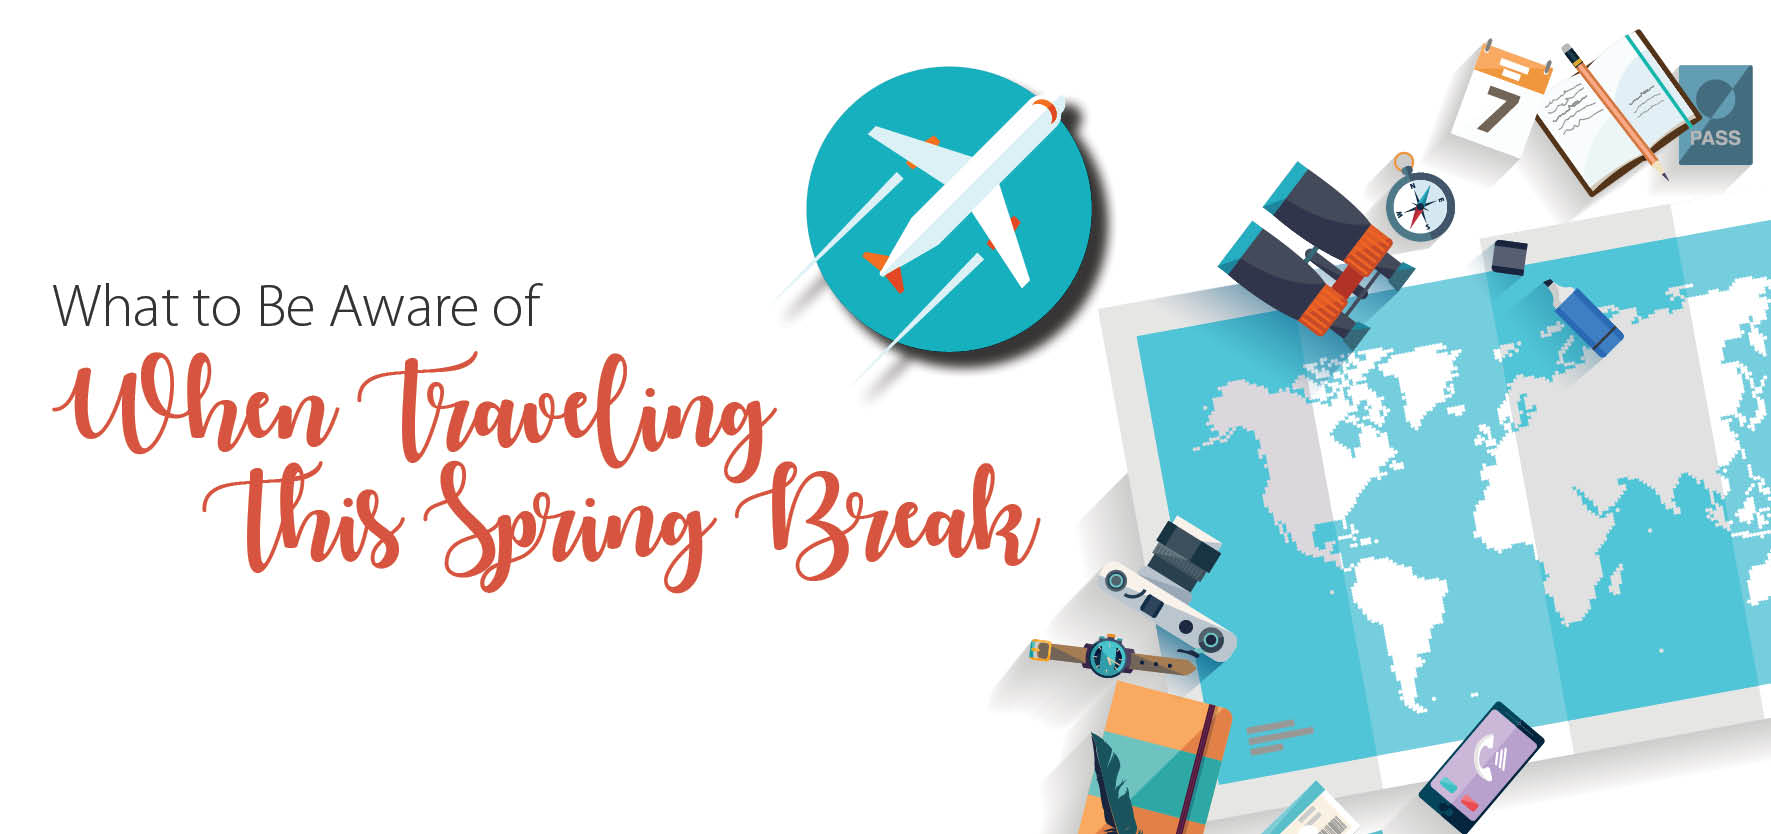 What to Be Aware of When Traveling This Spring Break